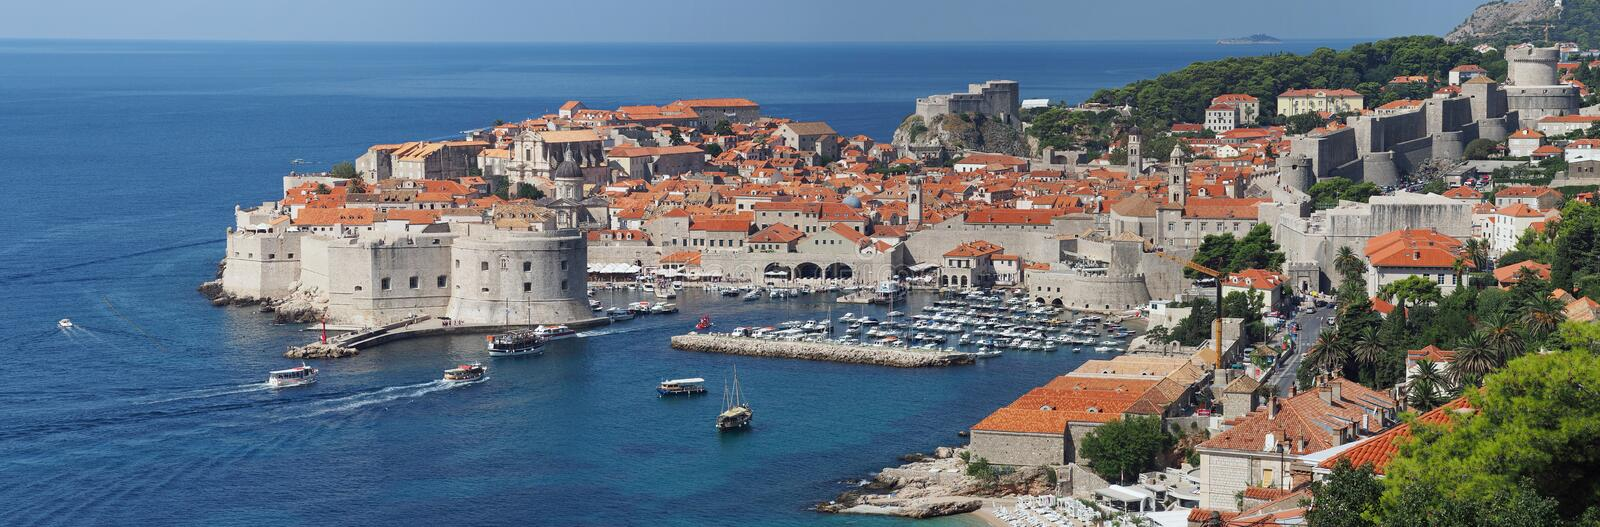 Dubrovnik, Croatia, panorama of the medieval city stock images